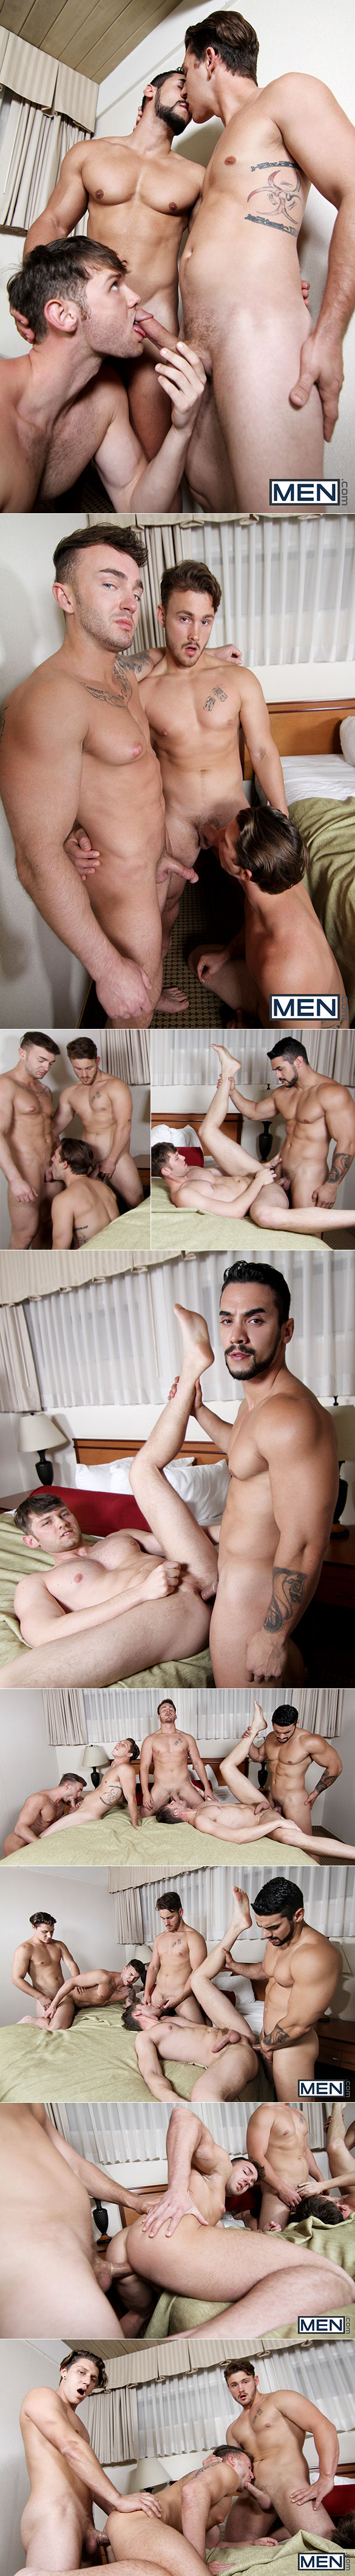 "Men.com: Paul Canon, Arad Winwin, Trevor Long, Jacob Peterson and Jake Ashford in ""On The Run, Part 3"""